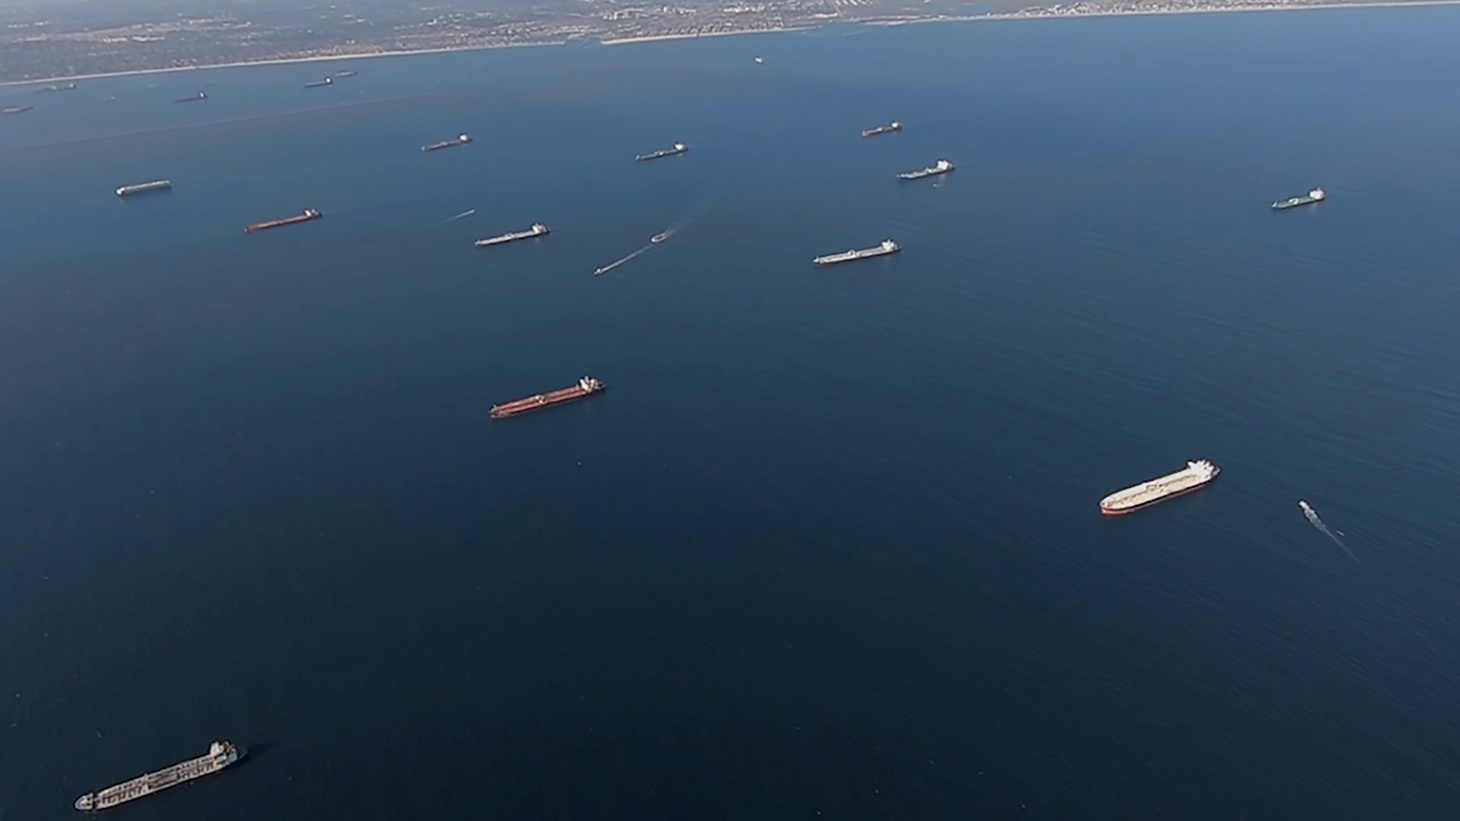 Some of the 27 oil tankers anchored off shore during the outbreak of the coronavirus disease (COVID-19) are viewed from a U.S. Coast Guard helicopter near Long Beach, California, U.S., in a still image from video taken April 23, 2020. Image taken April 23, 2020.